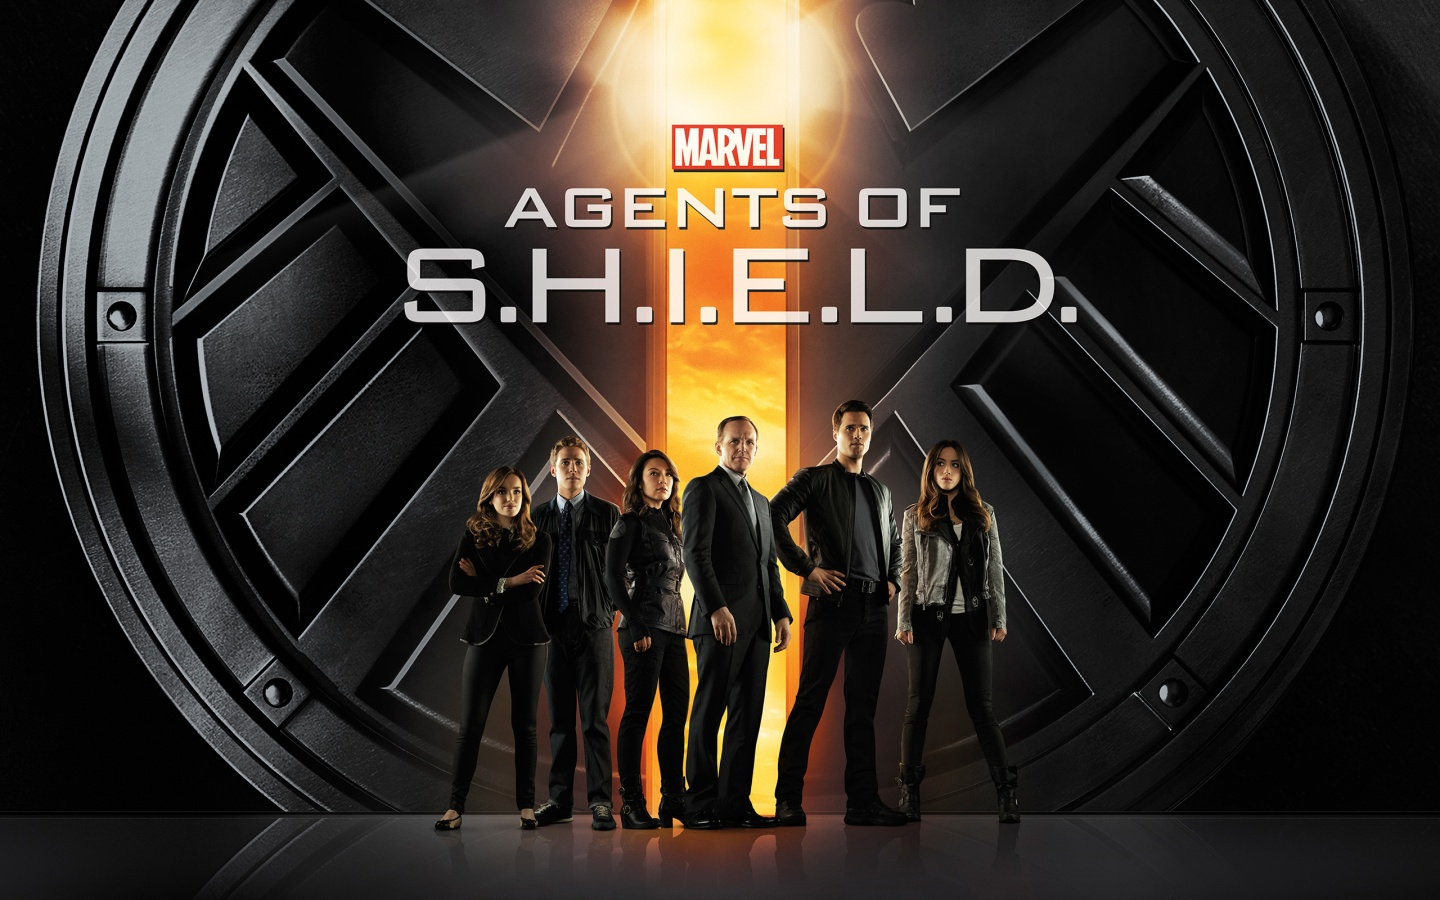 Agents of SHIELD Wallpapers HD Wallpapers 1440x900